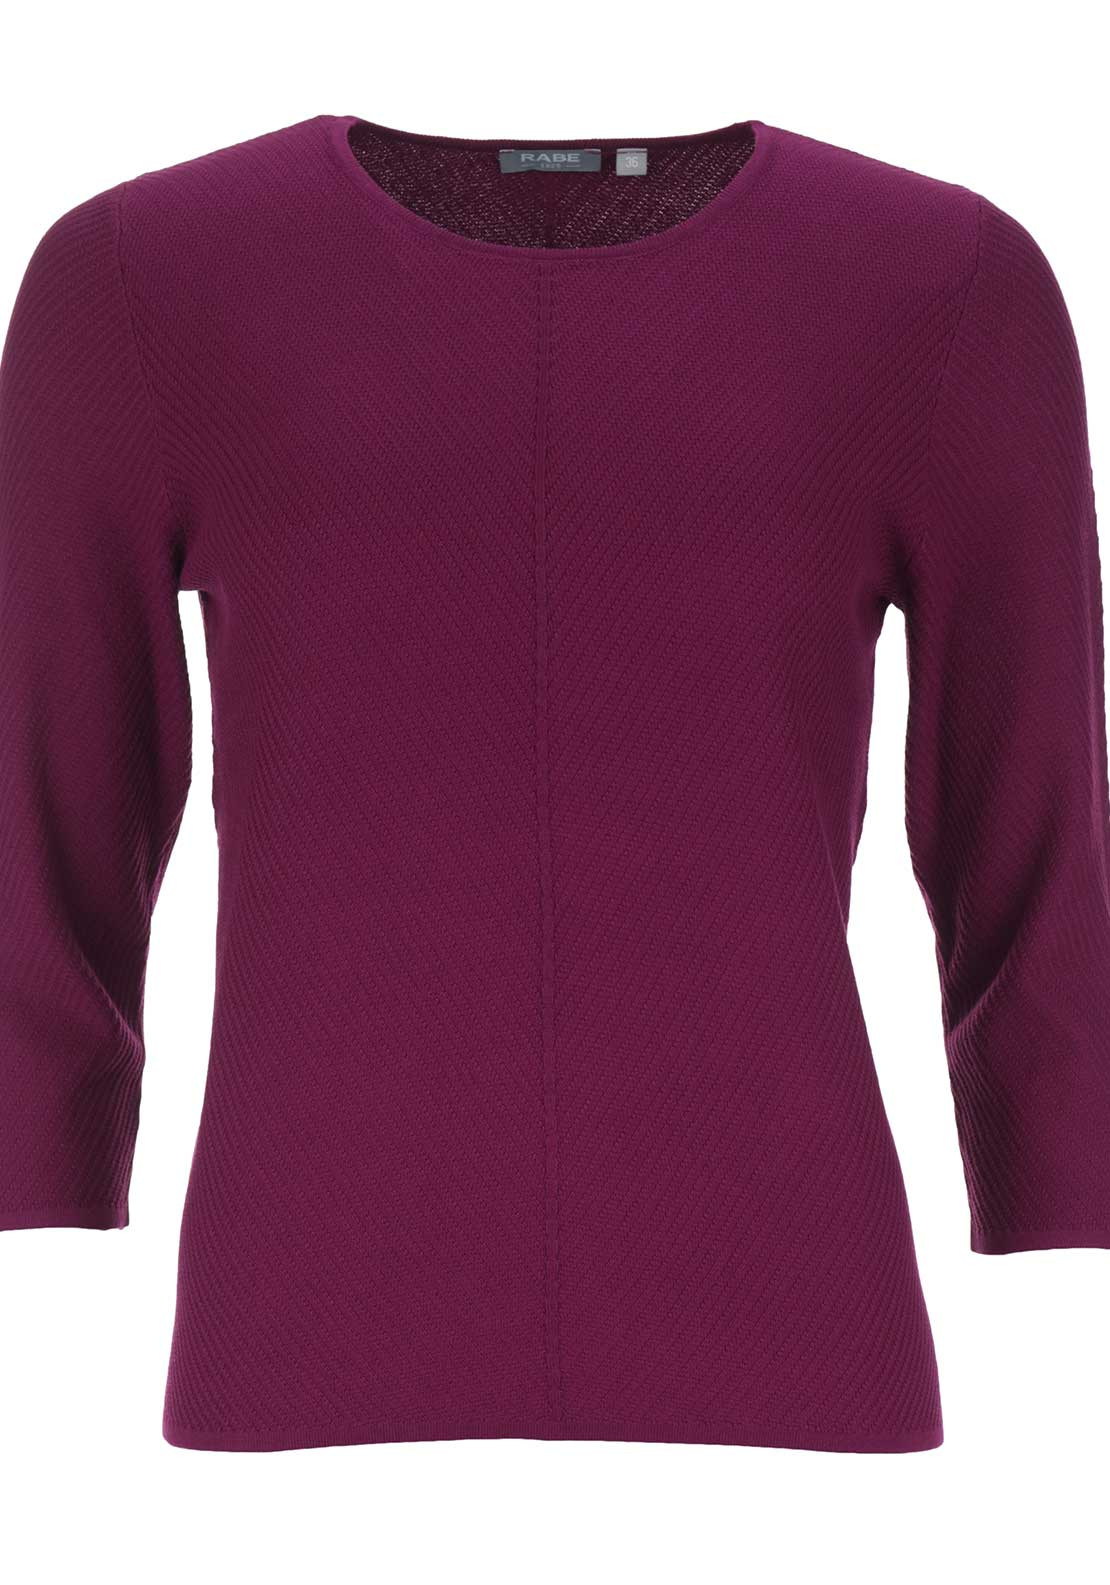 Rabe Textured Round Neck Sweater Jumper, Fuschia Pink